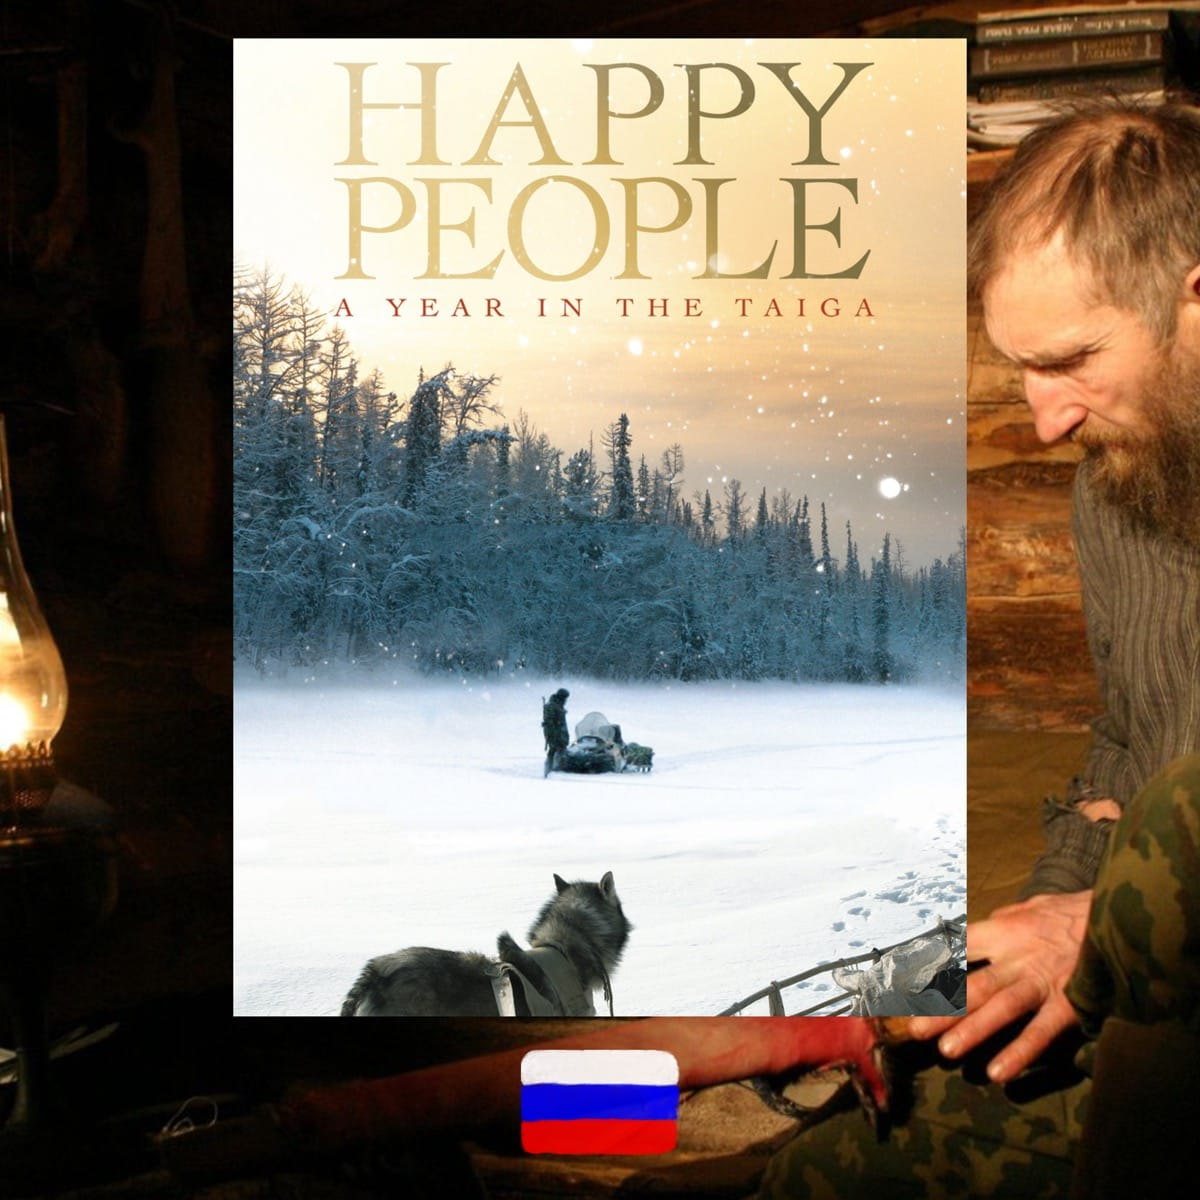 Happy People: A Year in Taiga', diHappy People: A Year in Taiga, Dmitriy Vasyukov, movie poster